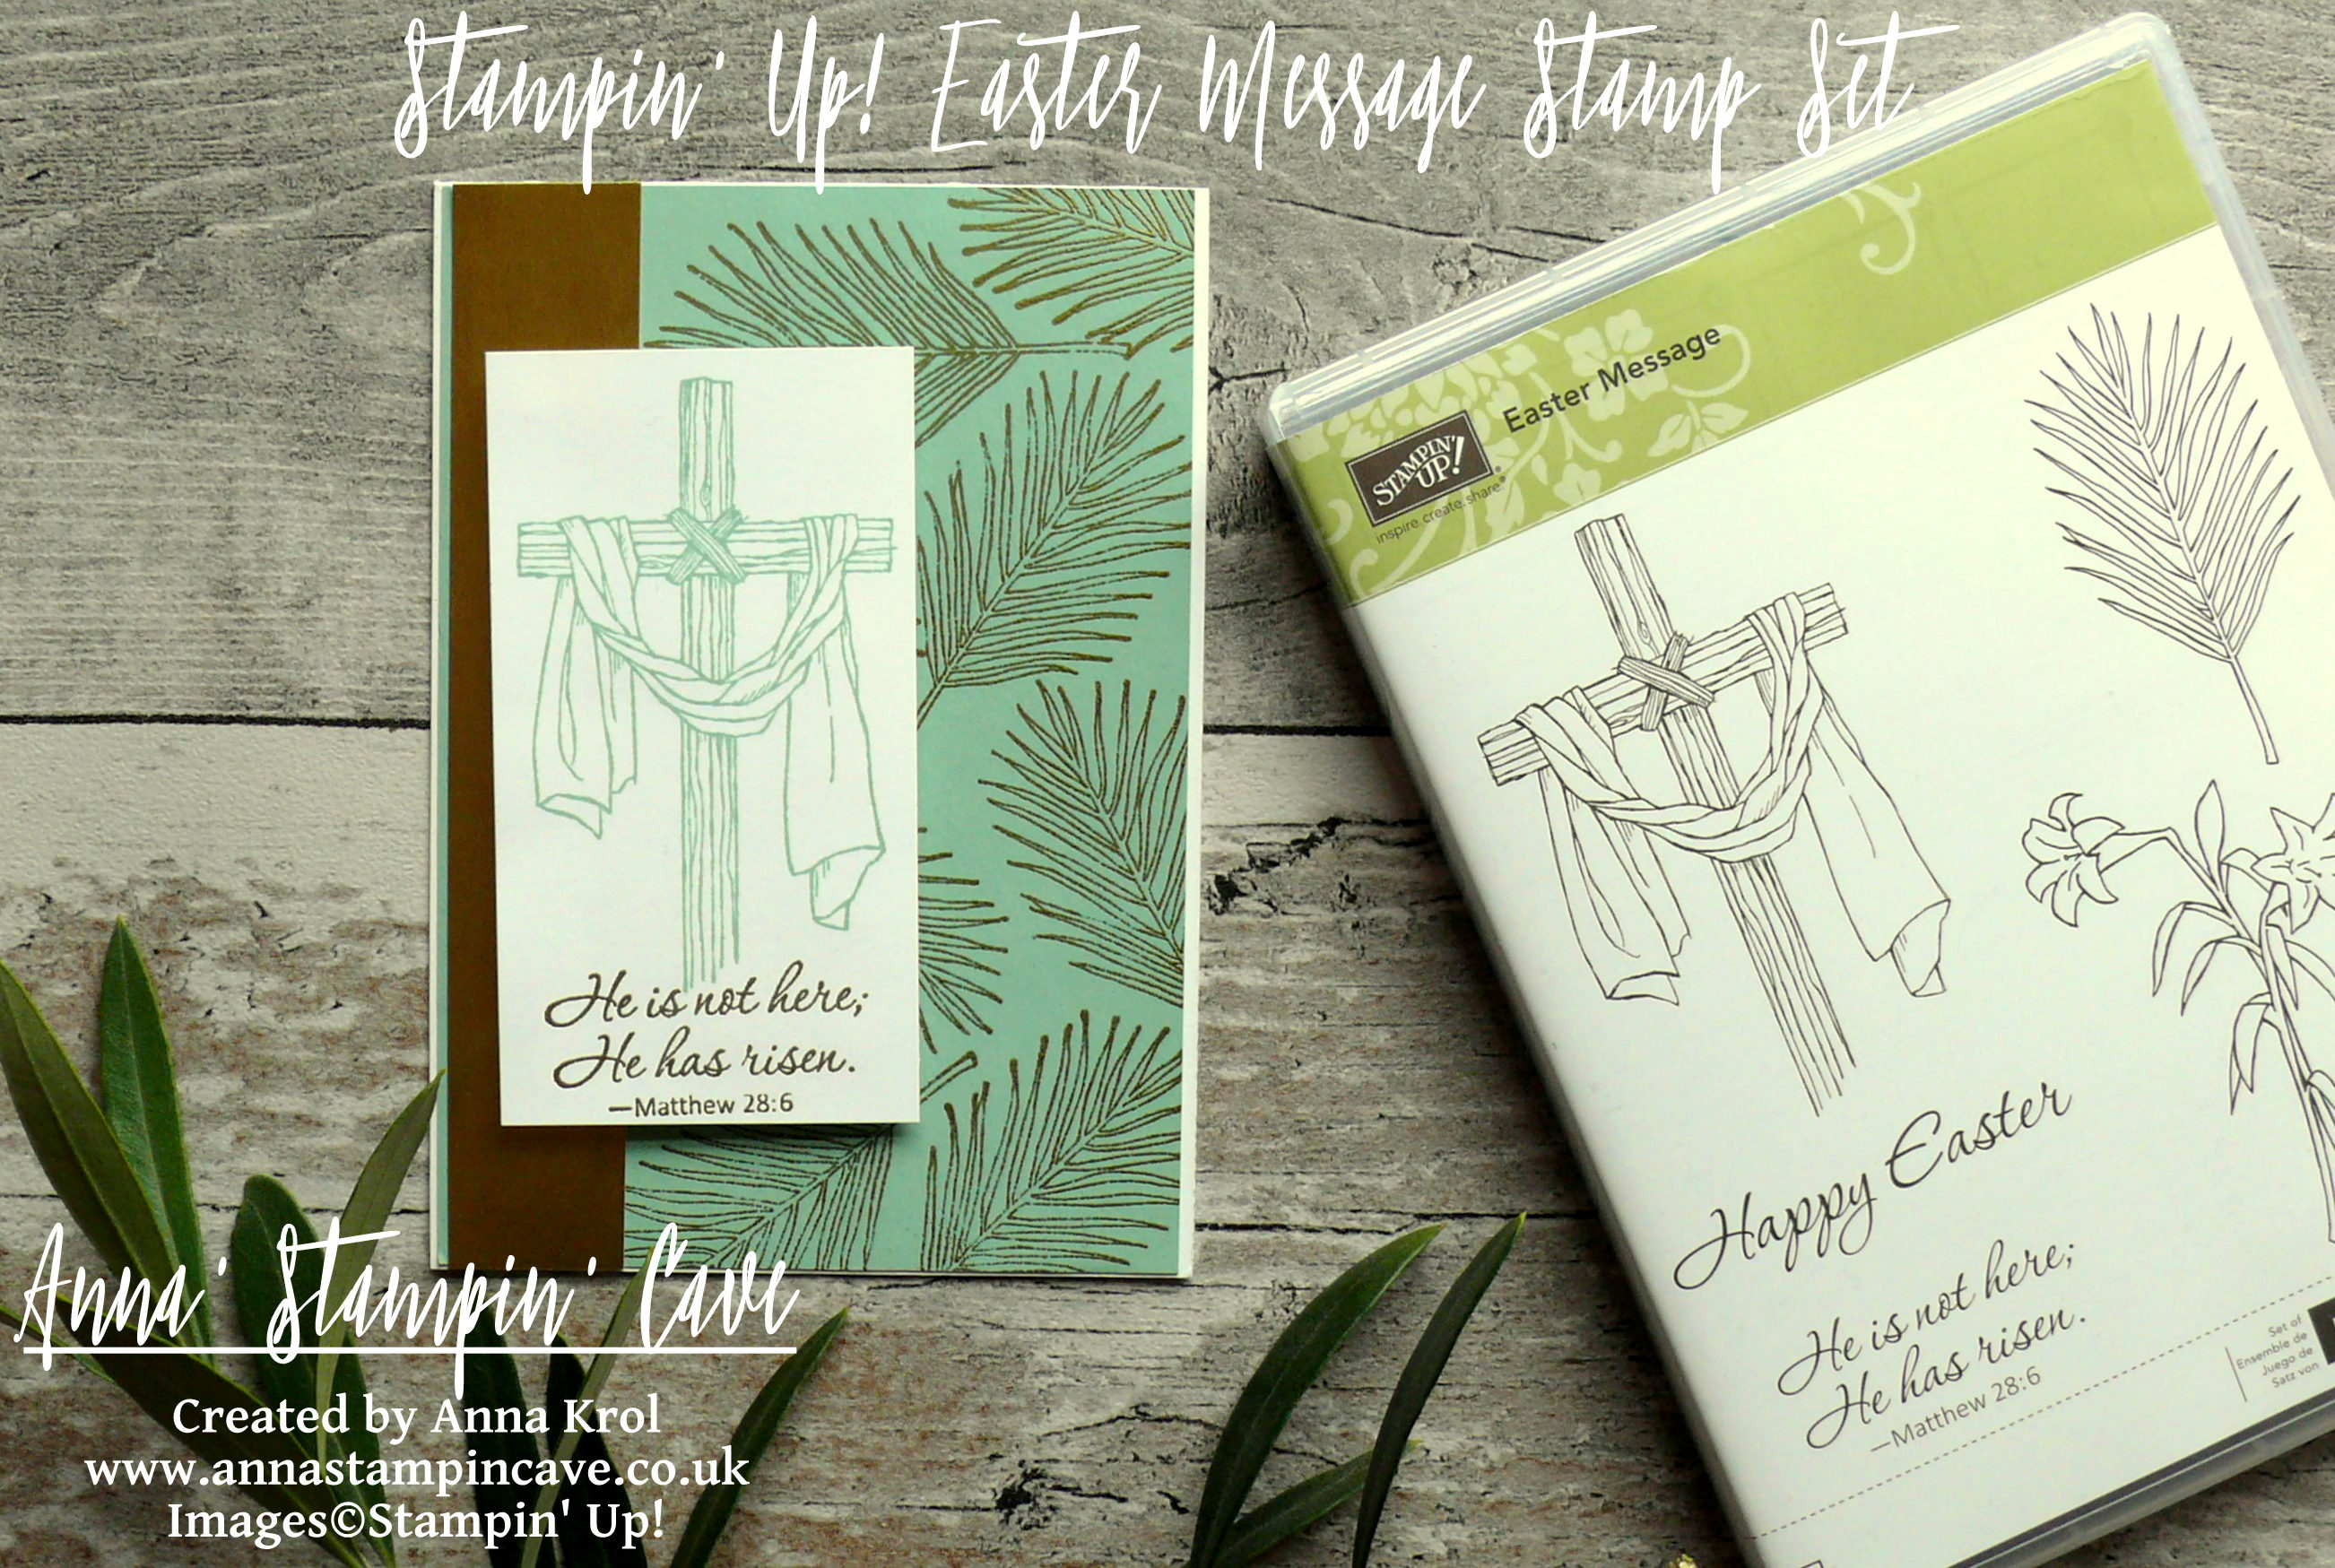 Anna' Stampin' Cave_Stampin' Up! Easter Message Stamp Set_Mint Macaron_gold foil_gold heat embossing_clean and simple_Jesus is risen